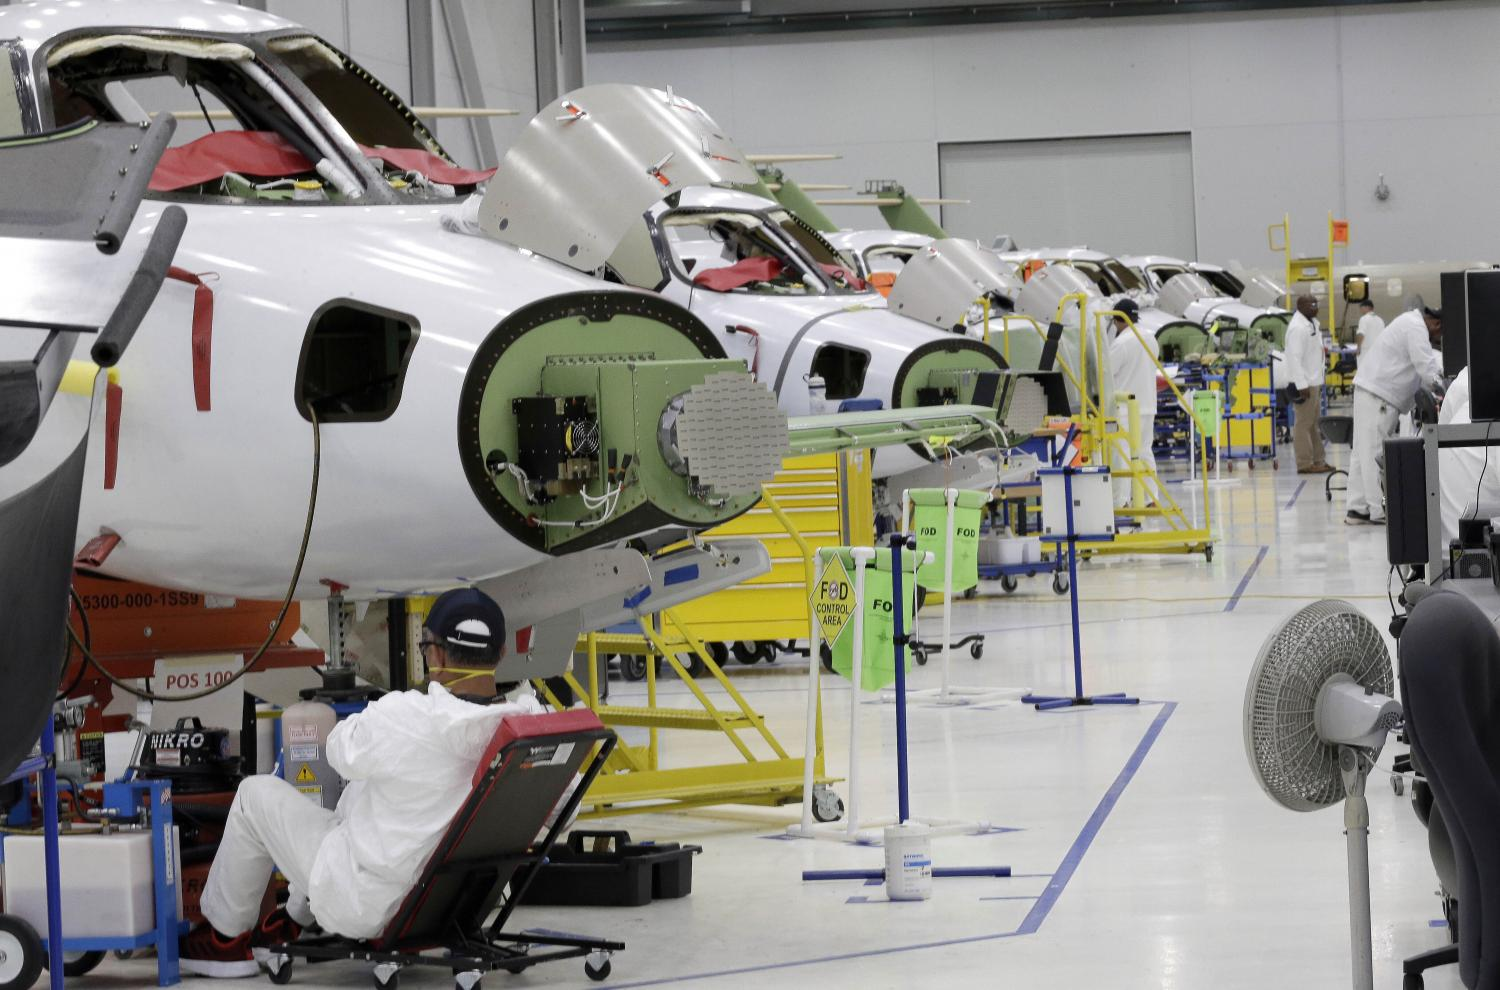 This photo taken on July 30, 2019 shows the production area at Honda Aircraft Co's headquarters in Greensboro, North Carolina where the HondaJet Elite aircraft is manufactured. (AP photo)